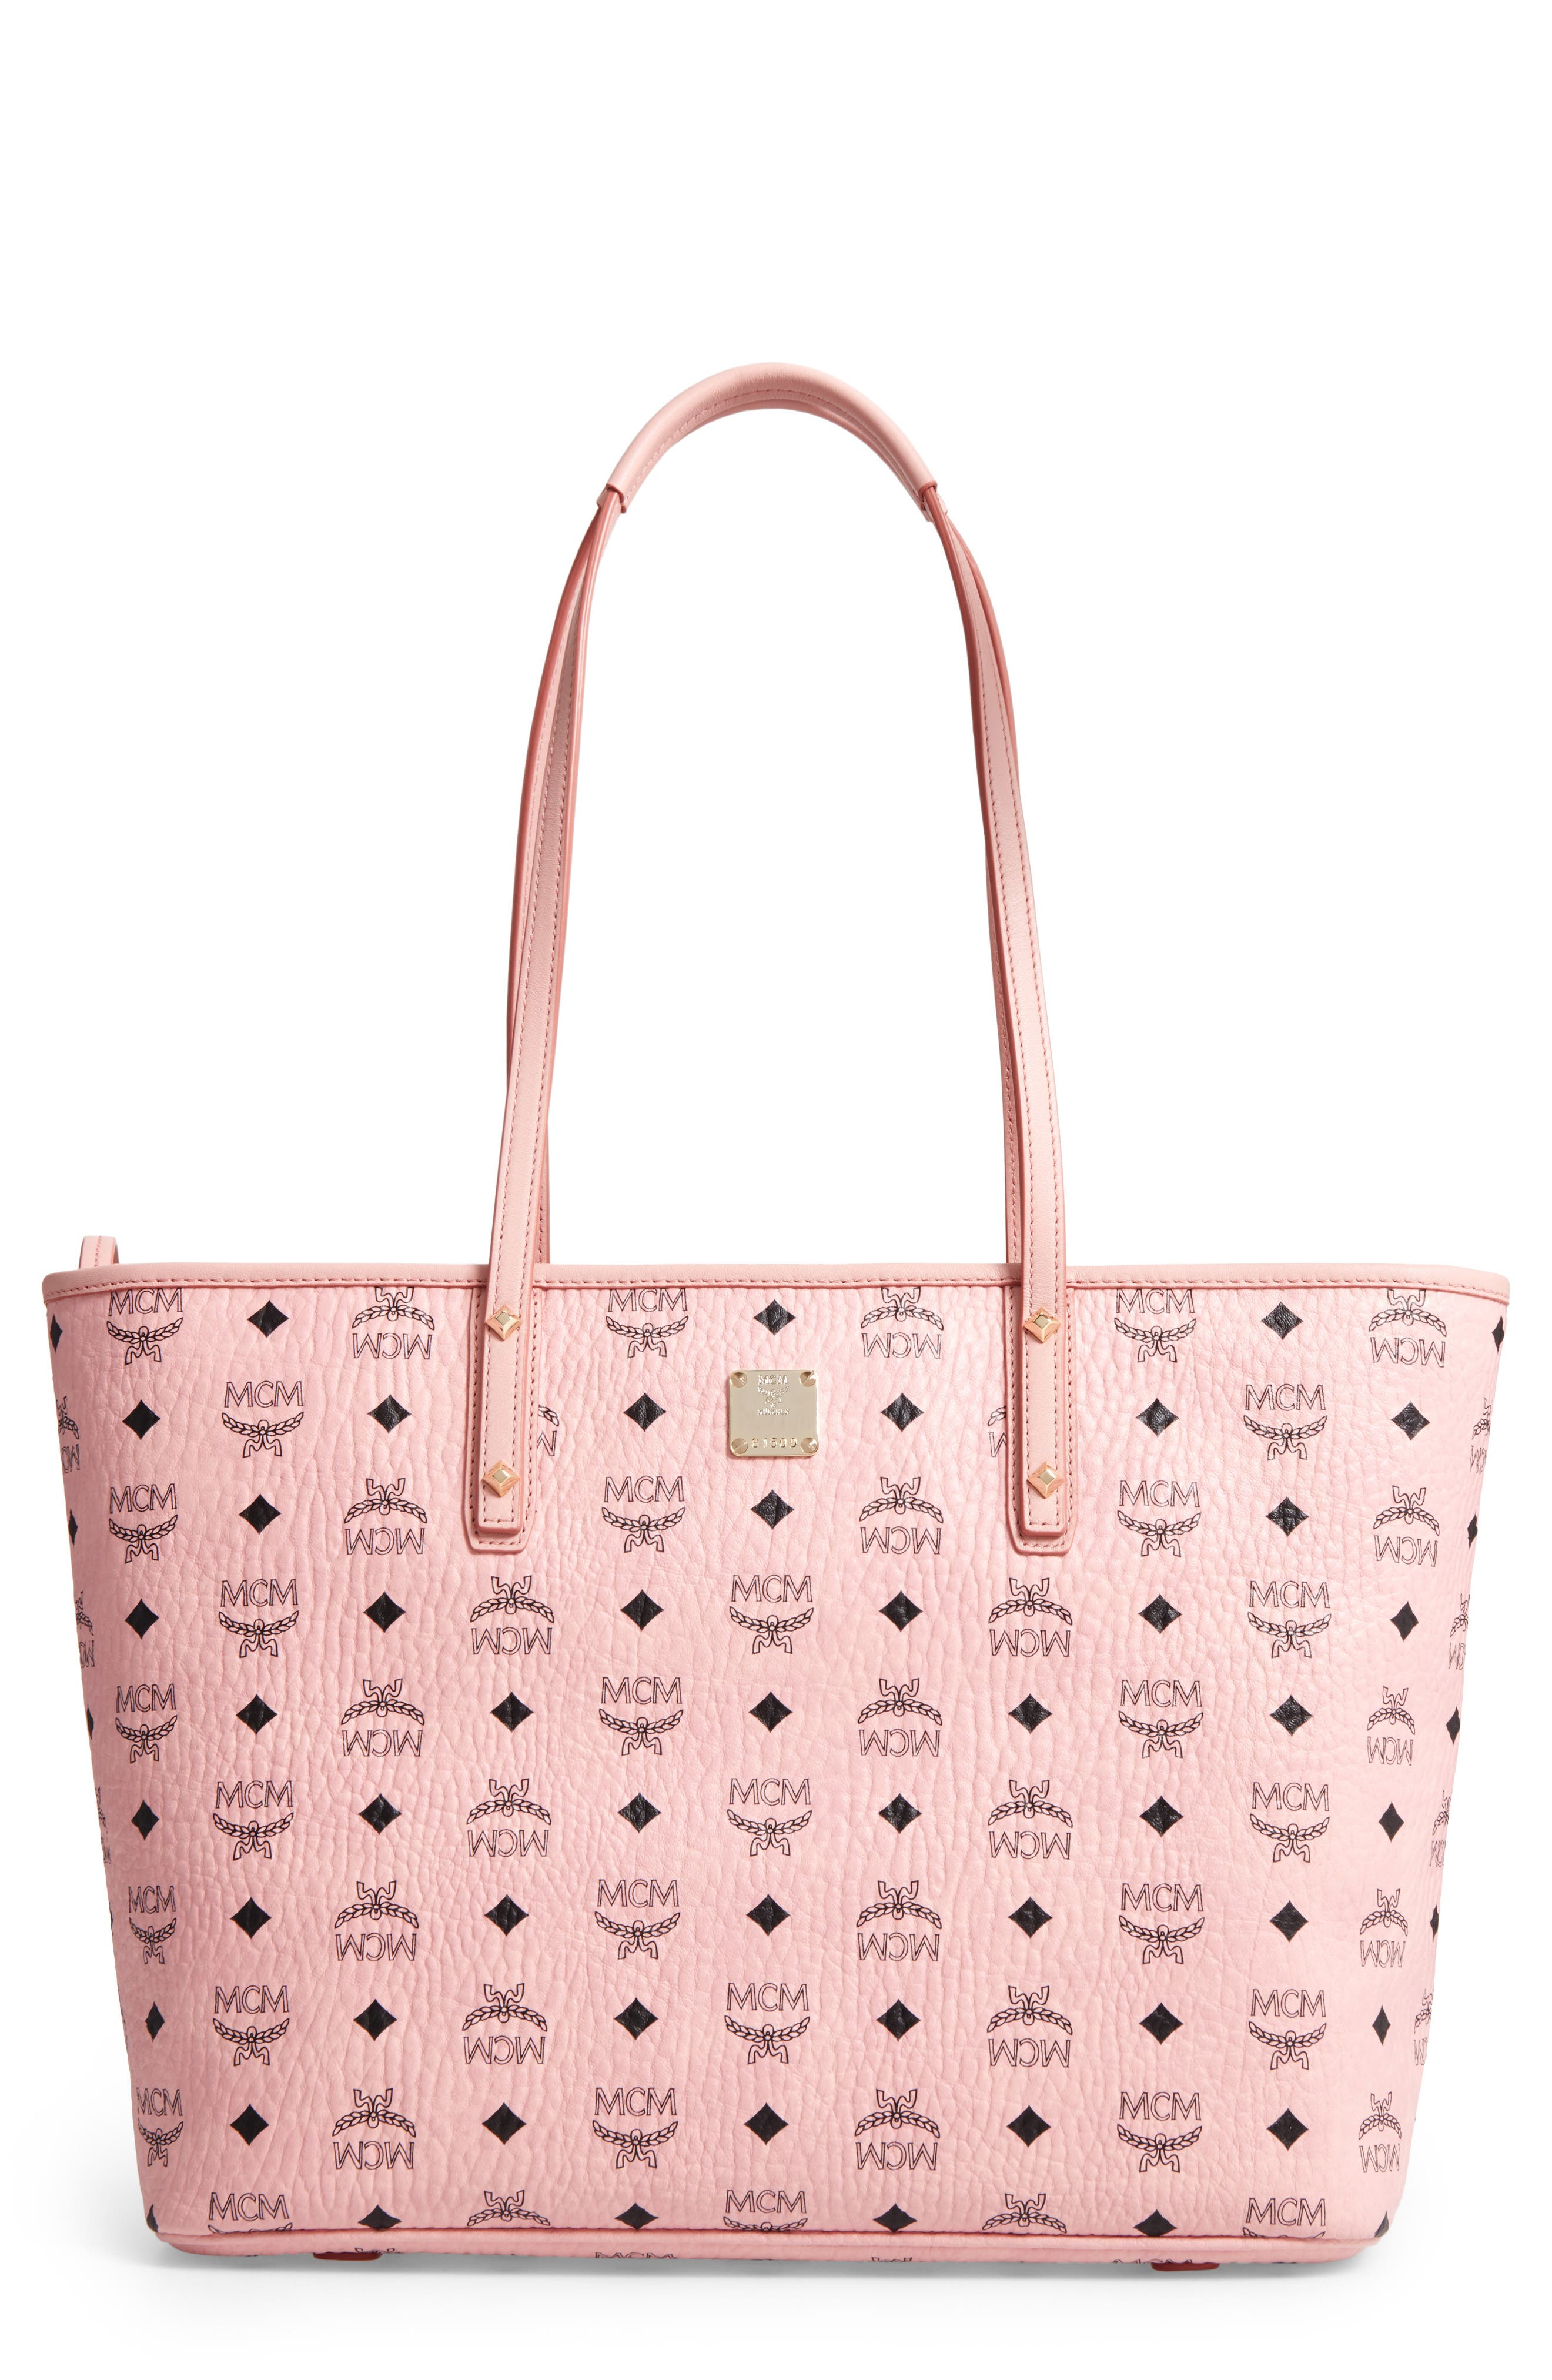 Mcm Handbags At Nordstrom Rack Handbags 2019